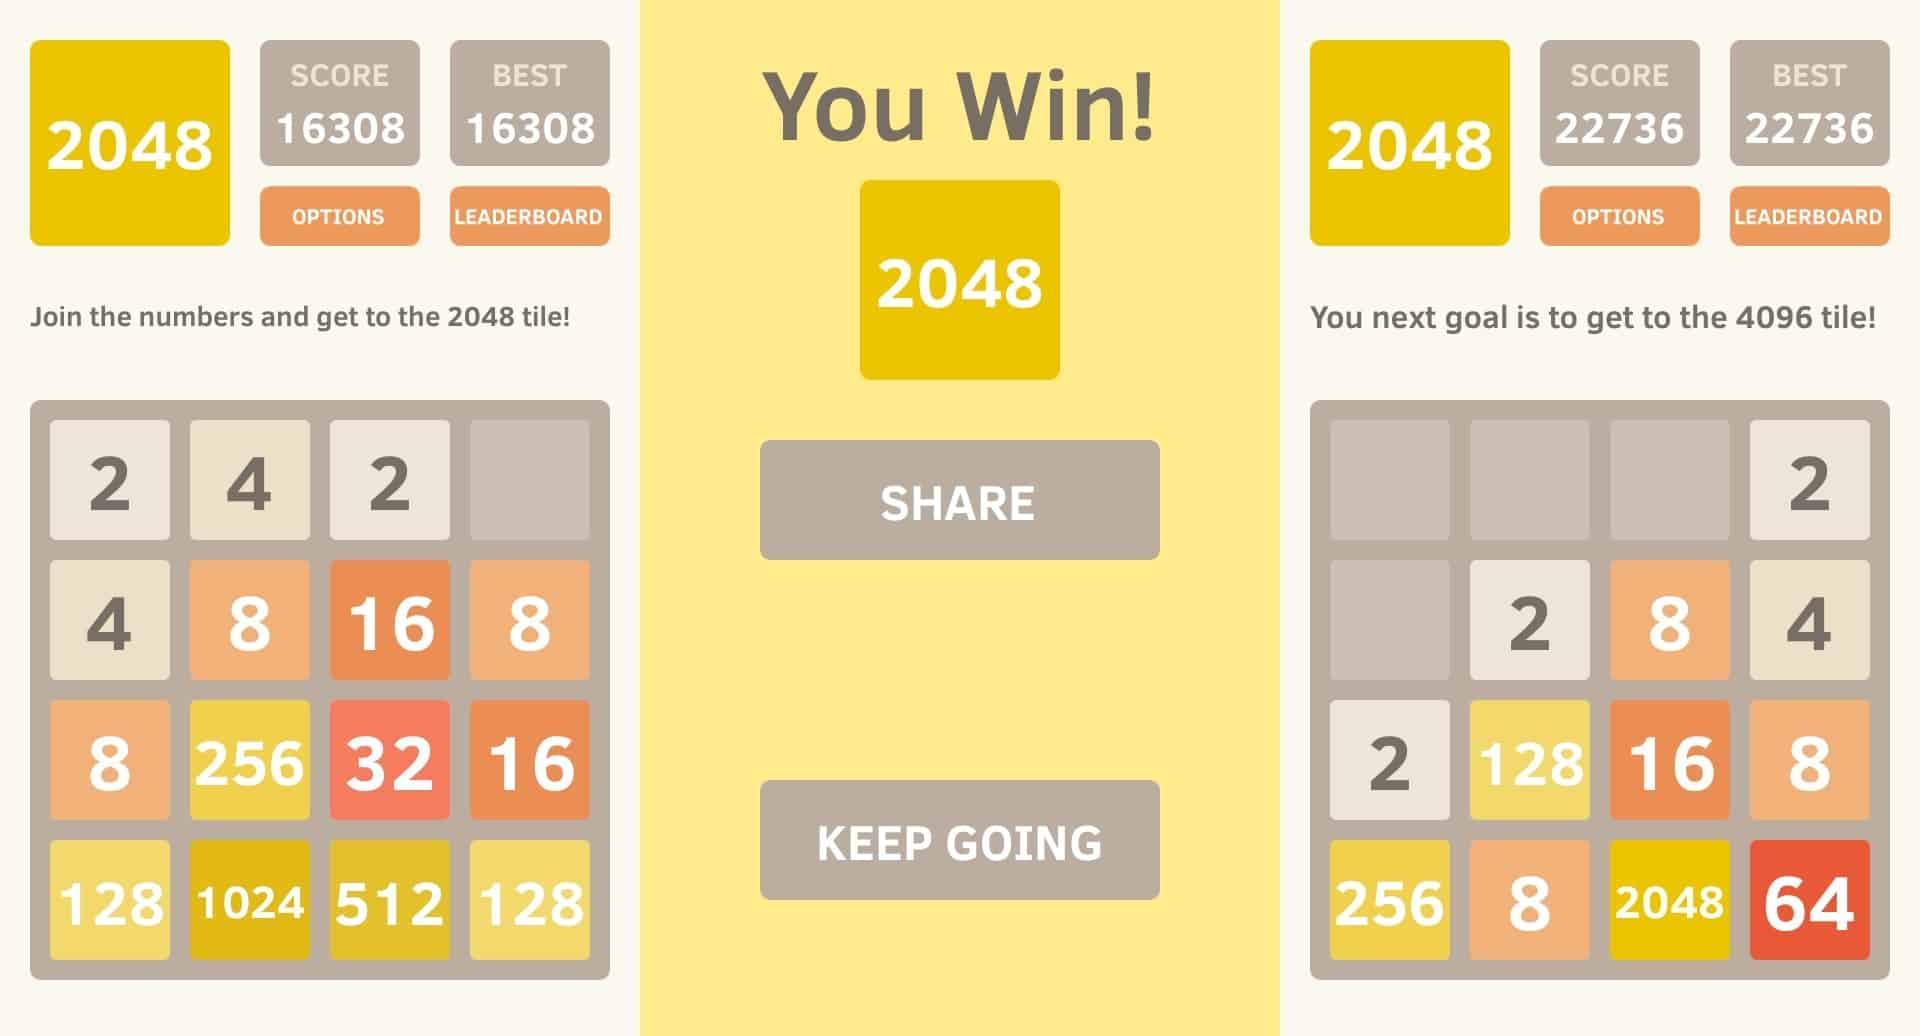 2048 Cheats: 4 Tips to Help You Reach the Tile